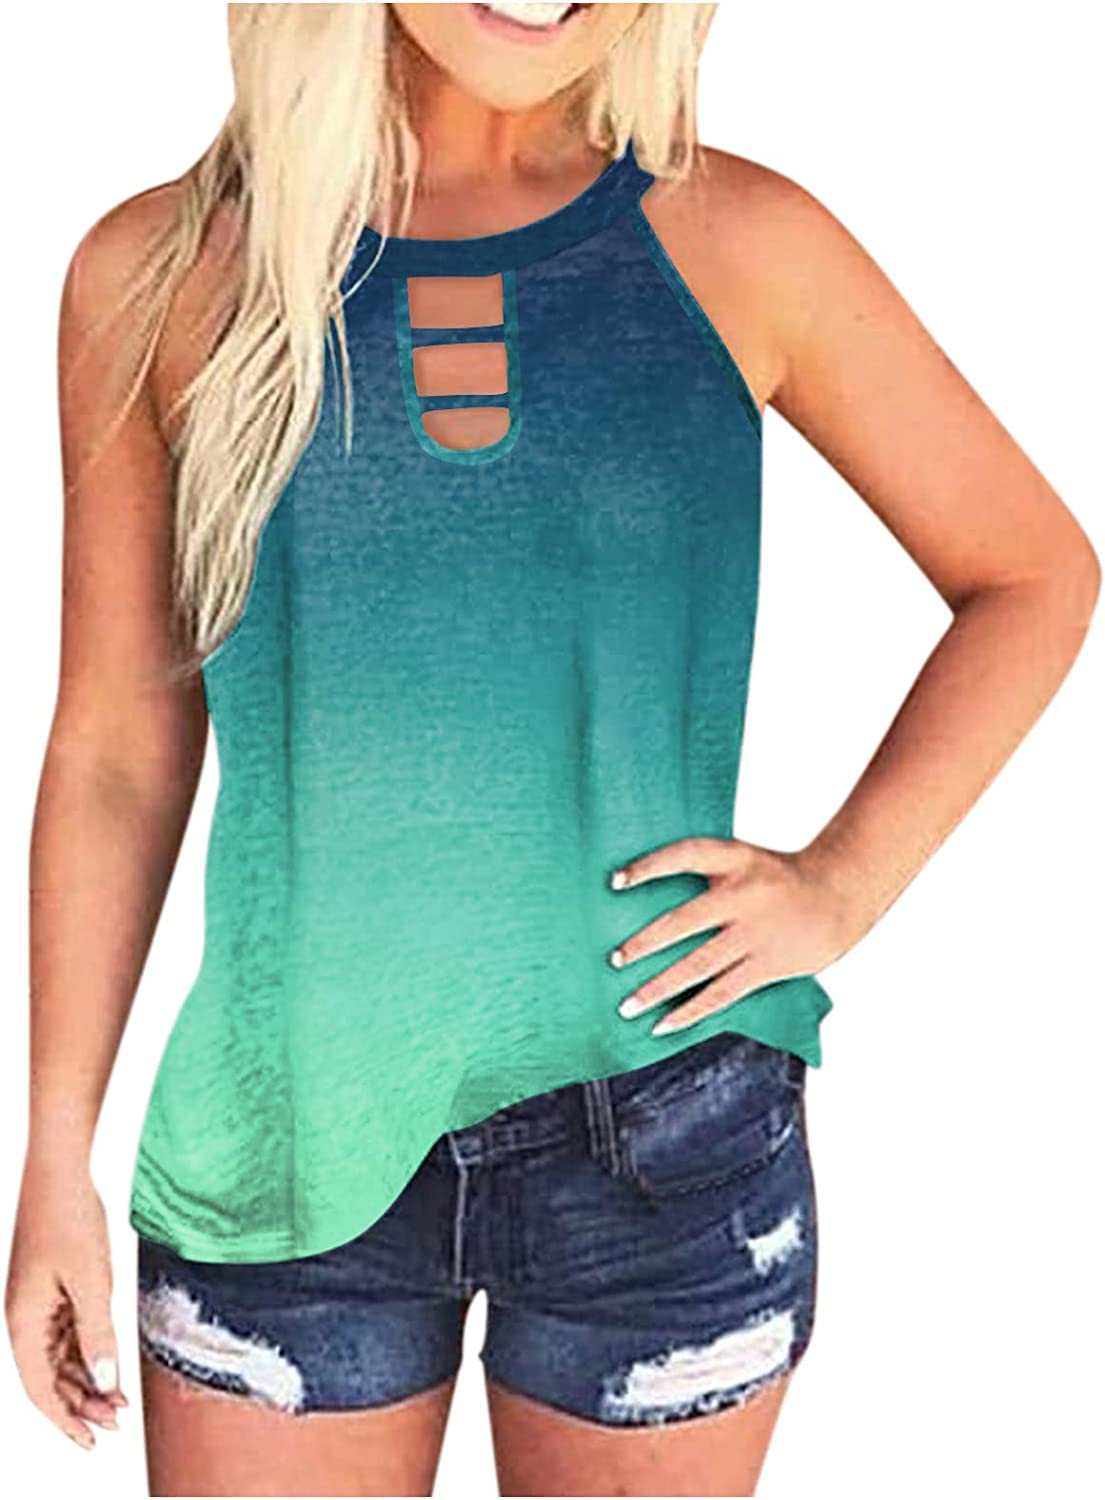 FABIURT Summer Tank Tops for Women, Womens Fashion Feather Printed Sleeveless Open Back Cami Tank Top Loose Vest Blouses